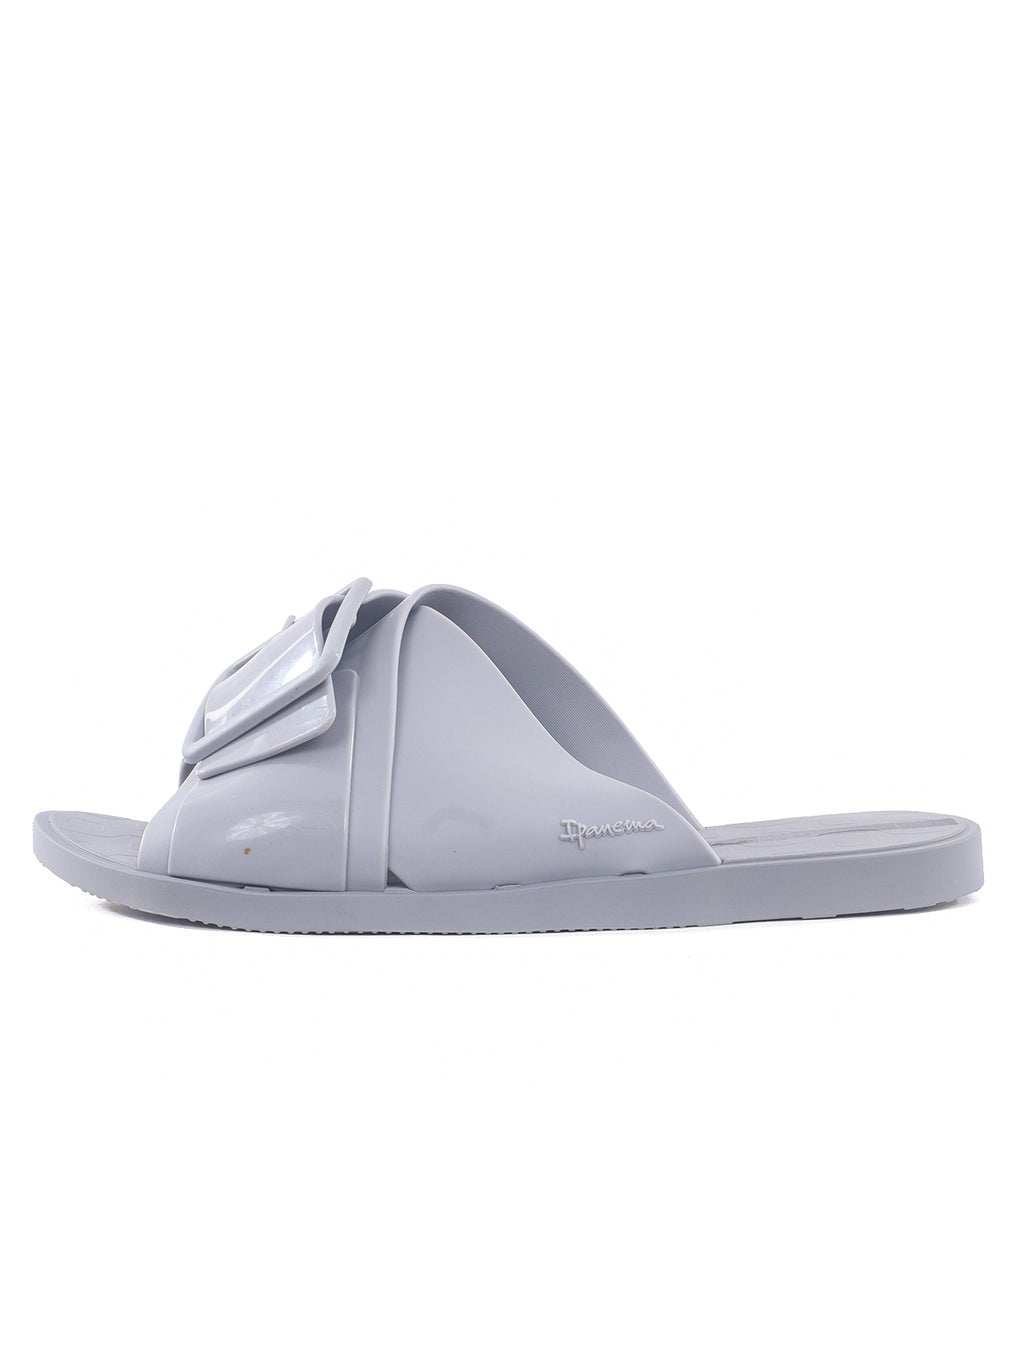 Ipanema Free Slides, Gray